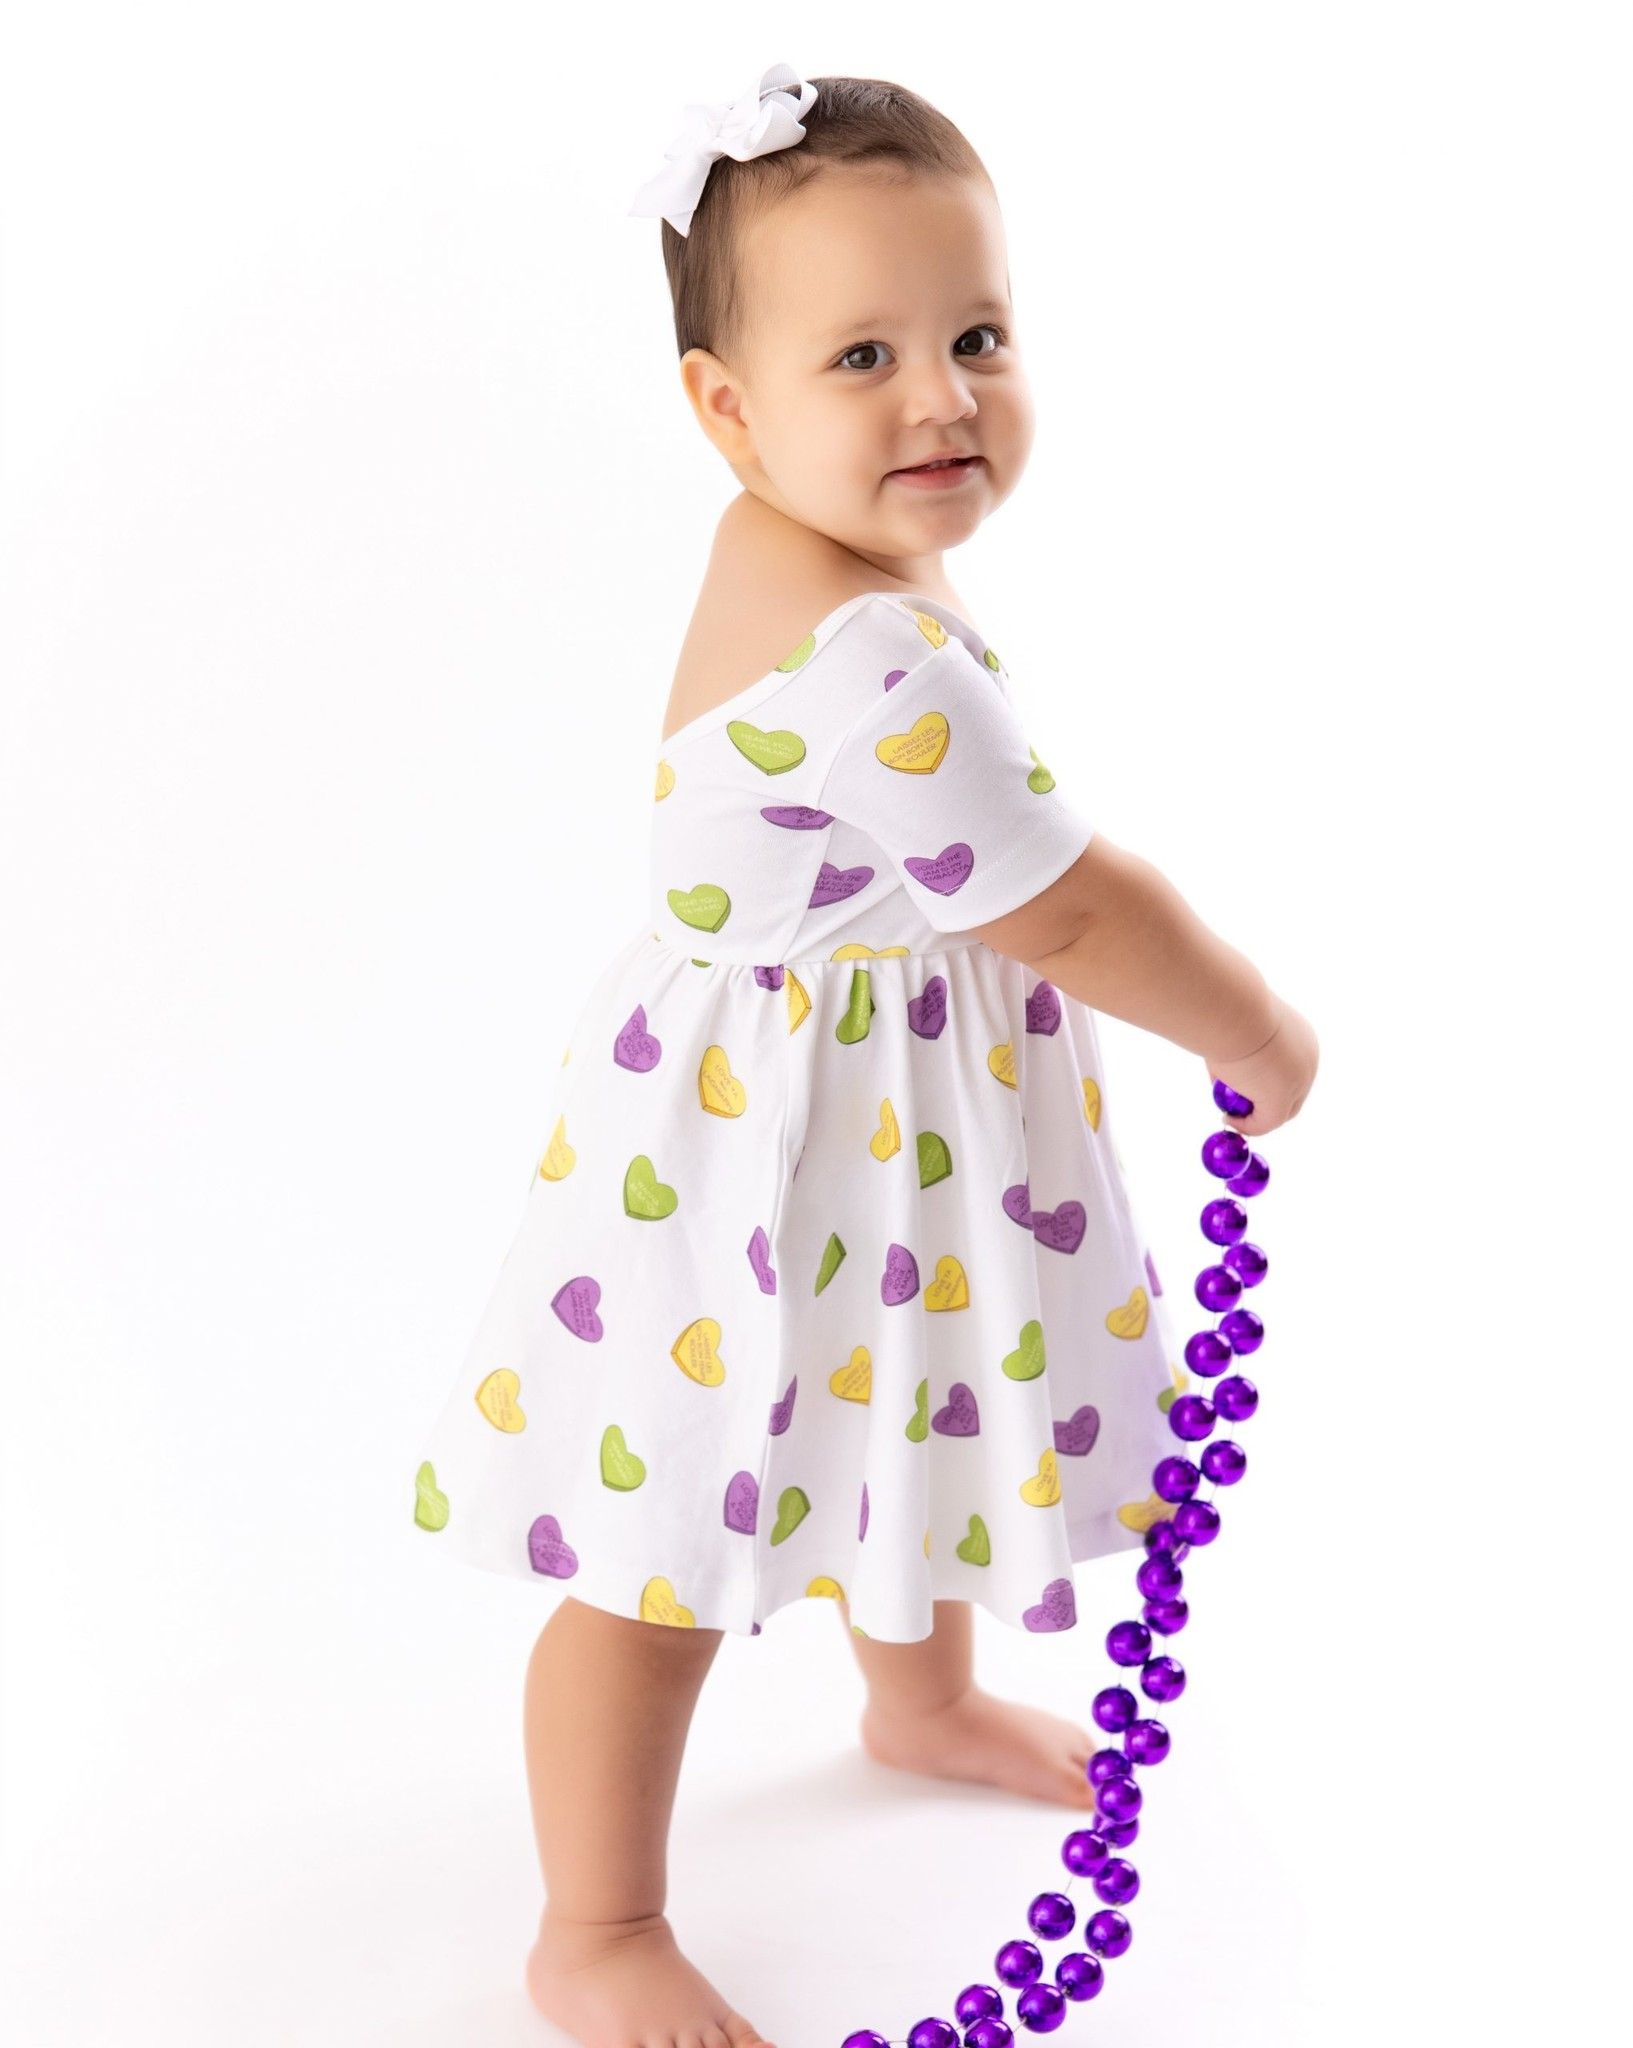 Nola Tawk Mardi Gras Sweet Hearts Organic Cotton Dress